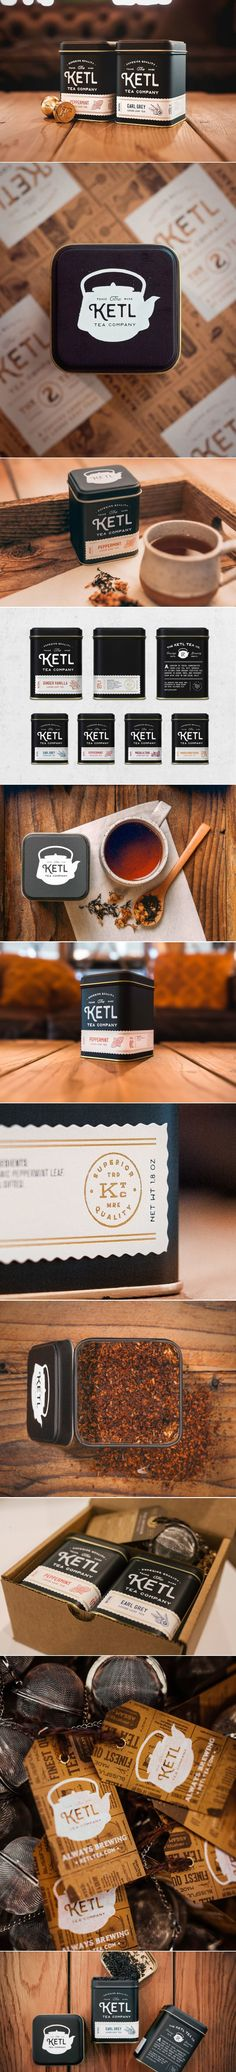 This Tea Packaging Comes With a Nice Handmade Feeling — The Dieline | Packaging & Branding Design & Innovation News